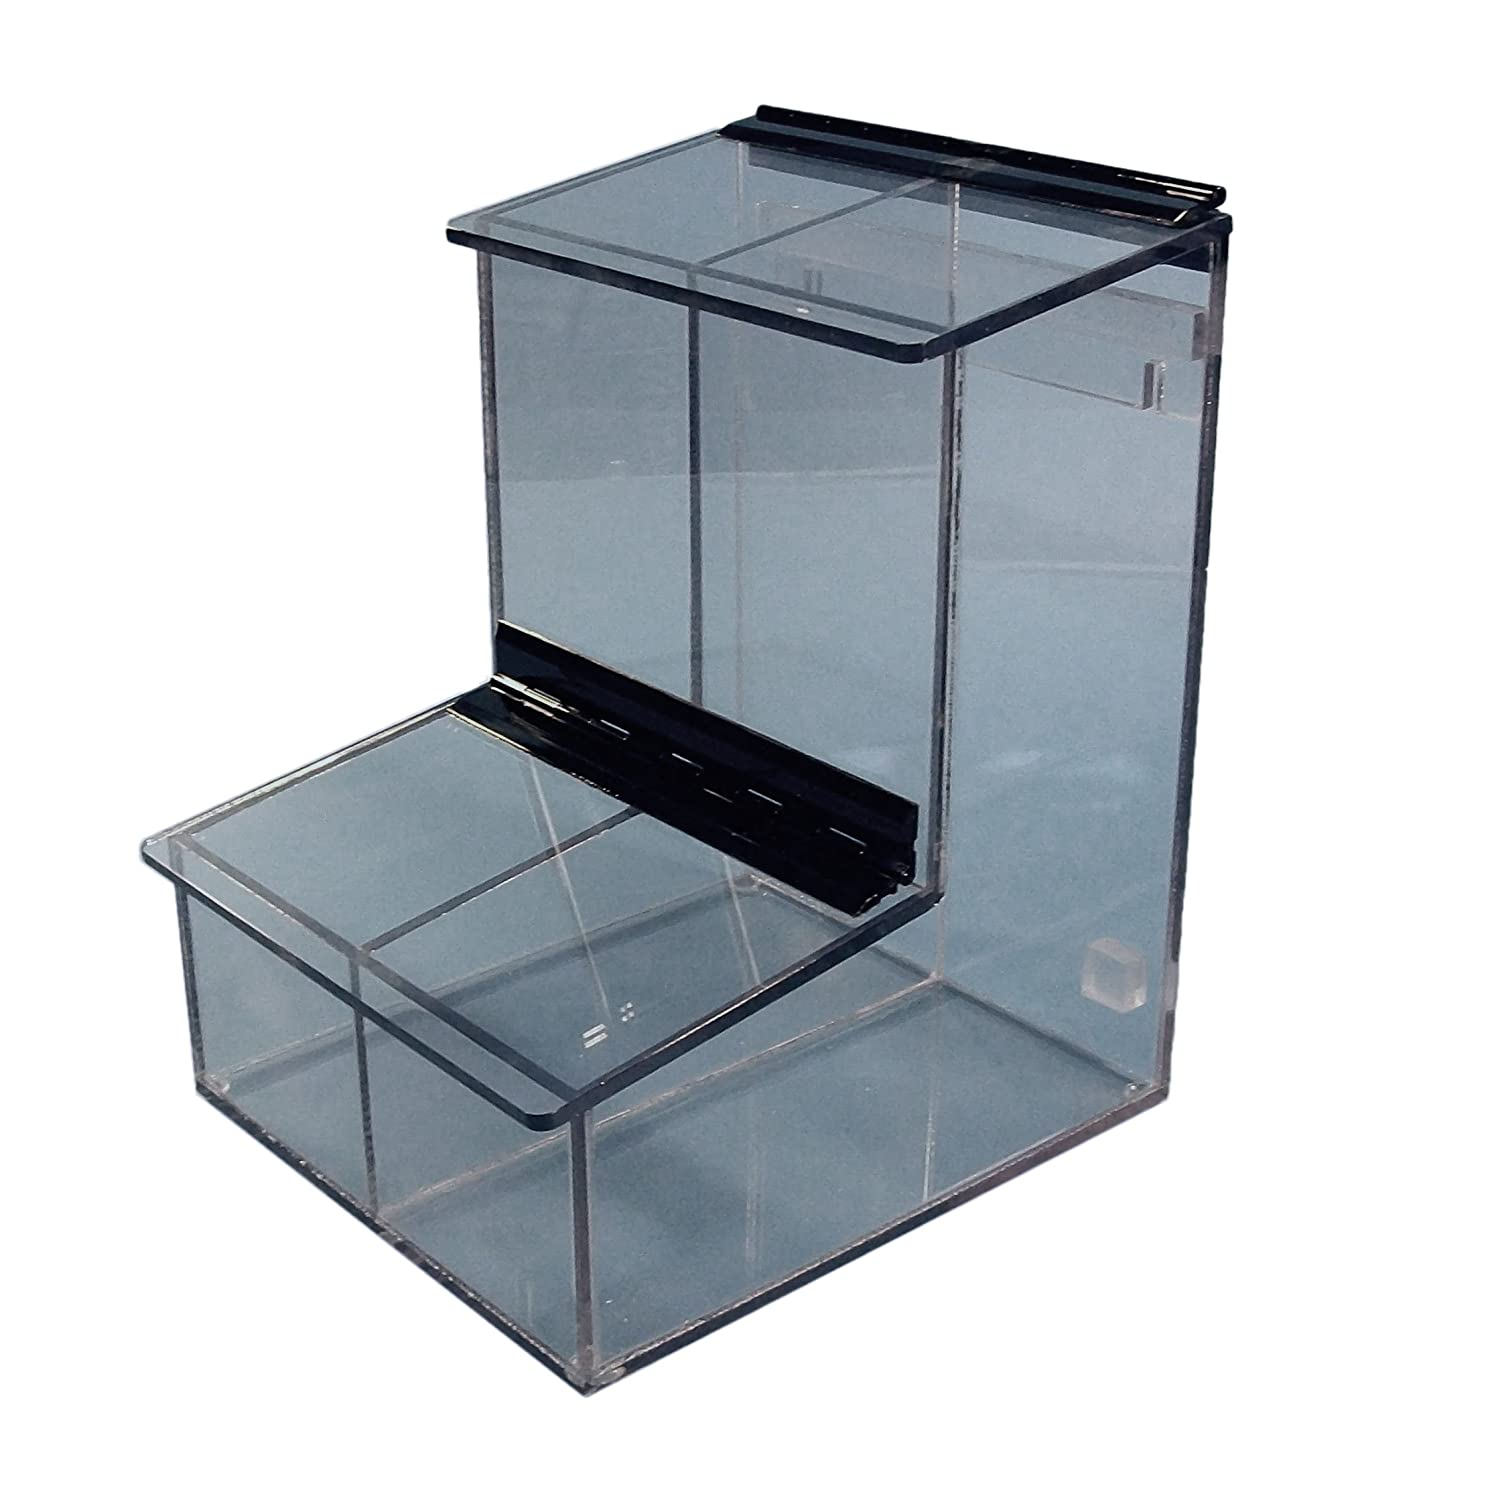 16 Height 12 Depth 14 Width 1//4 Thickness Clear S-Curve SD-200 PETG 2 Compartment Dispenser for Sterile or Pair Packaged Gloves